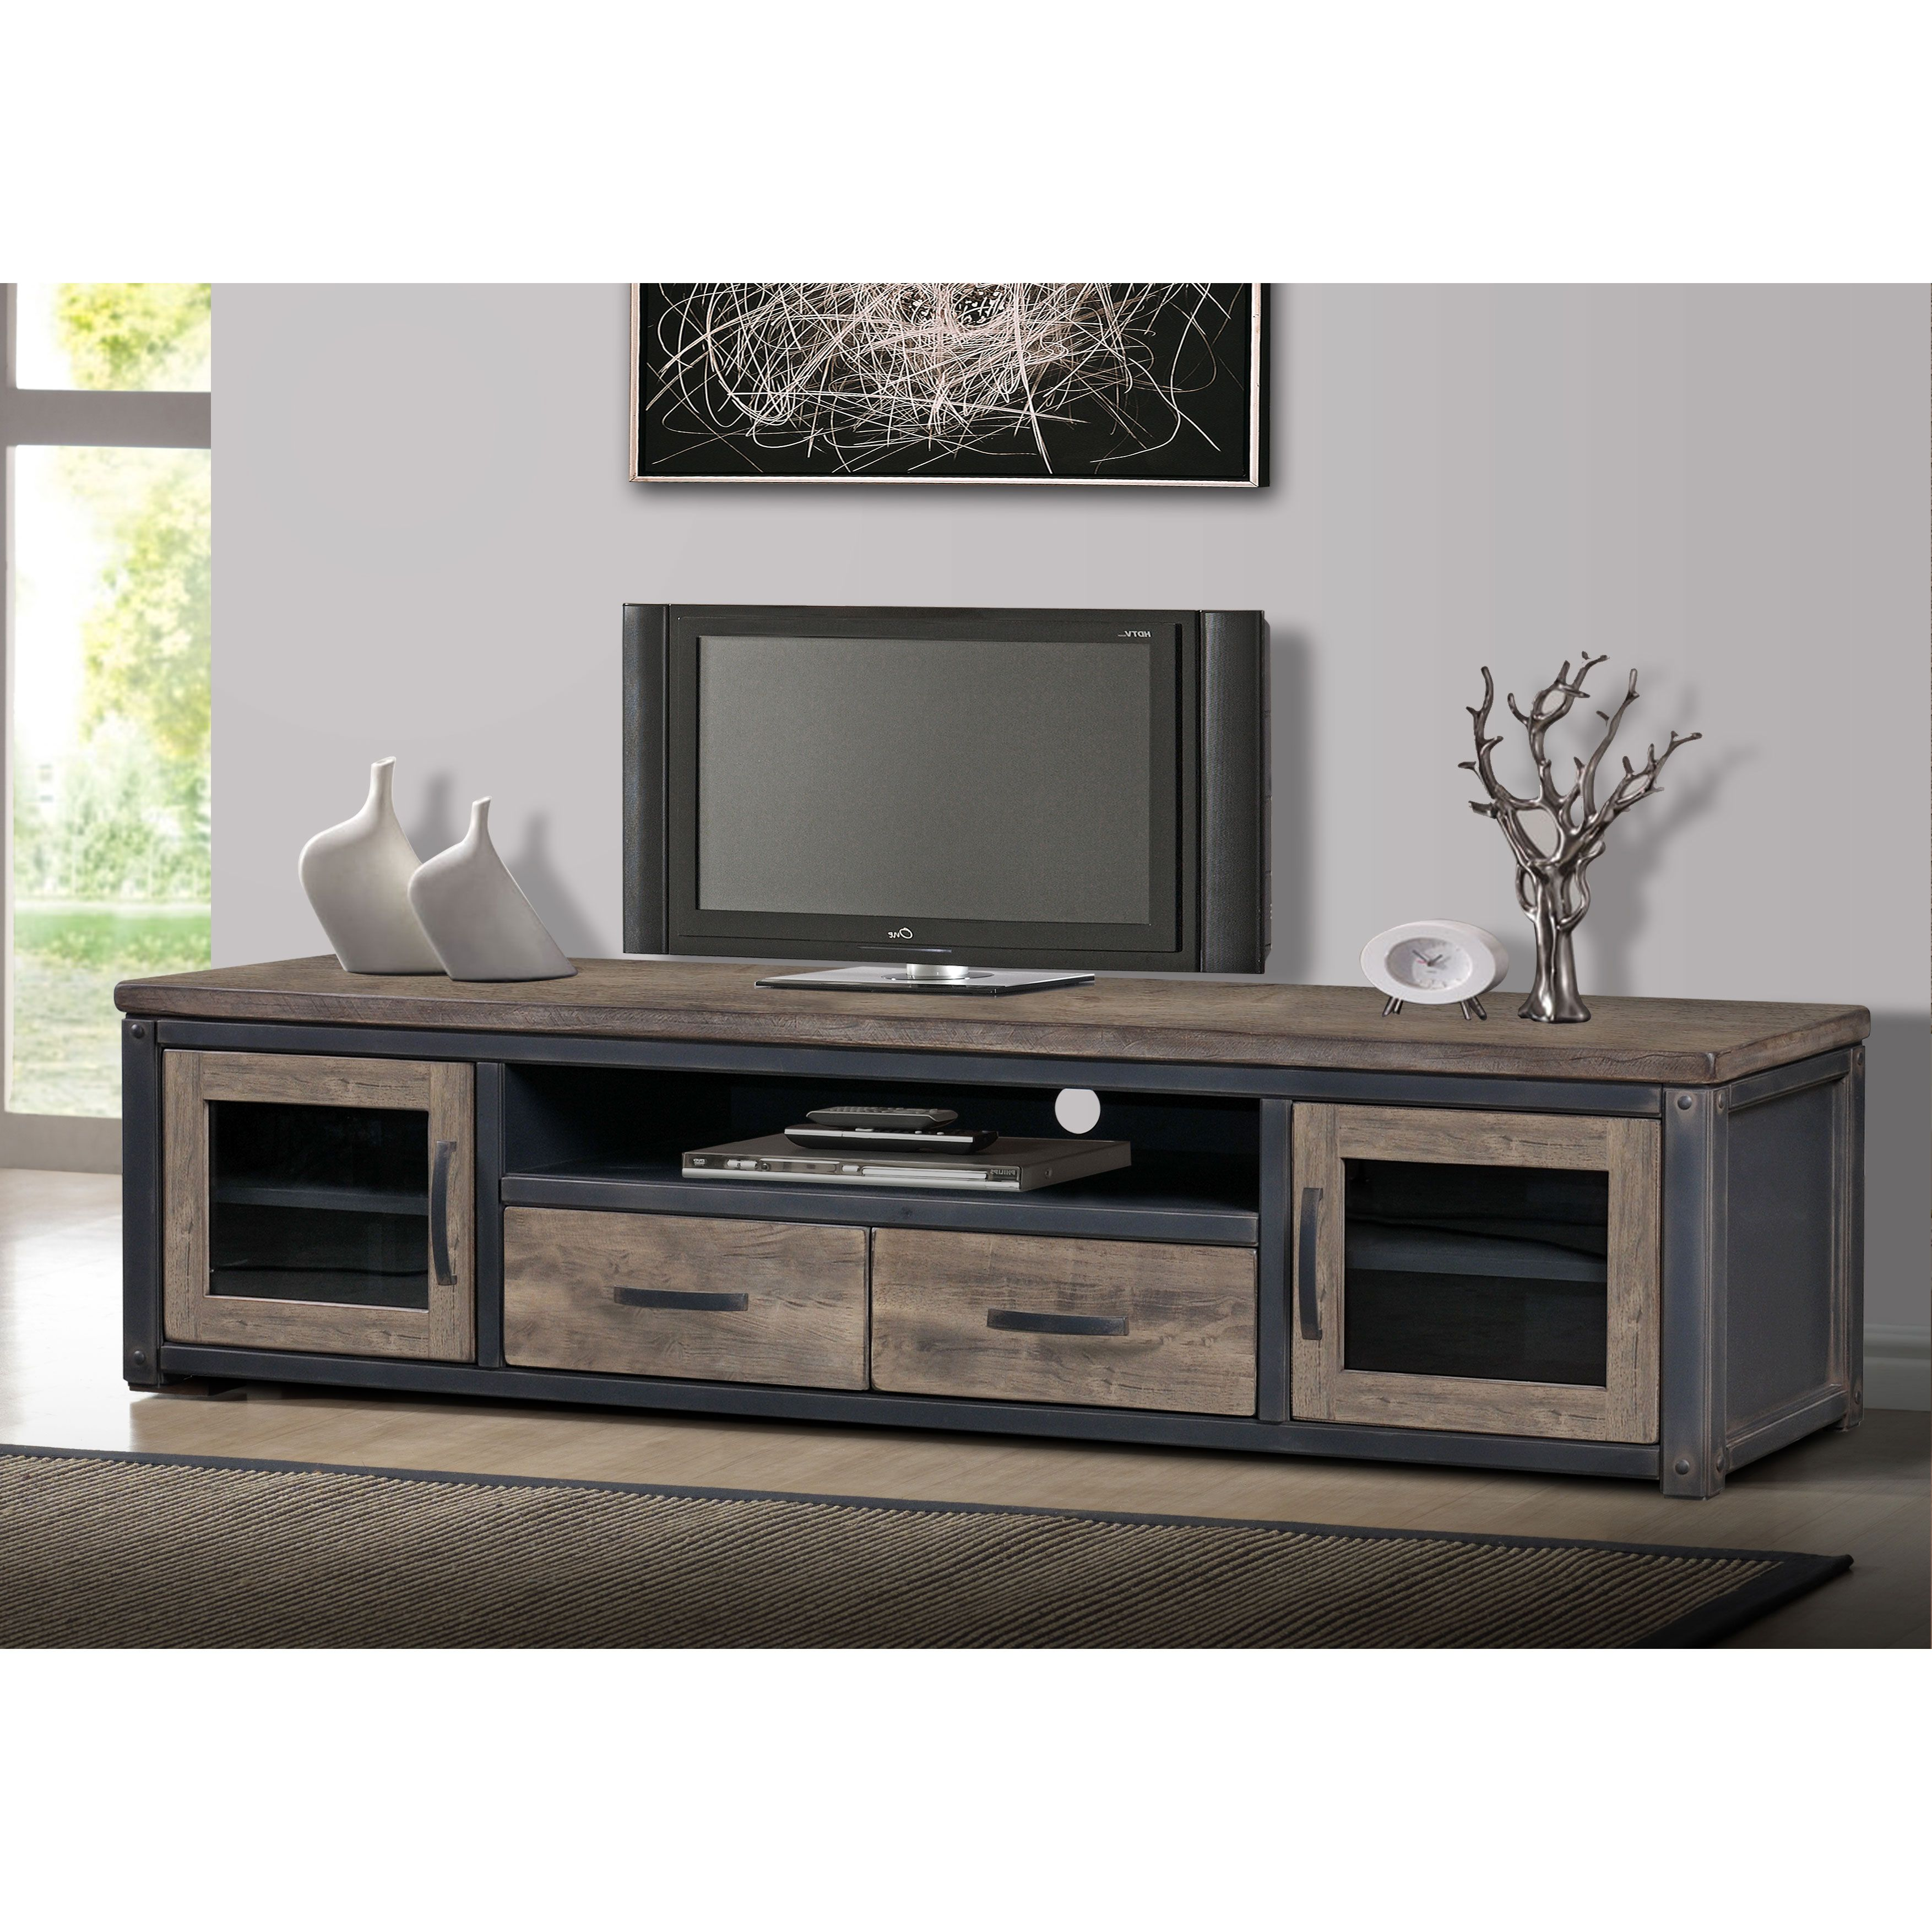 Heritage Rustic Entertainment Center | Glass doors, Drawers and ...